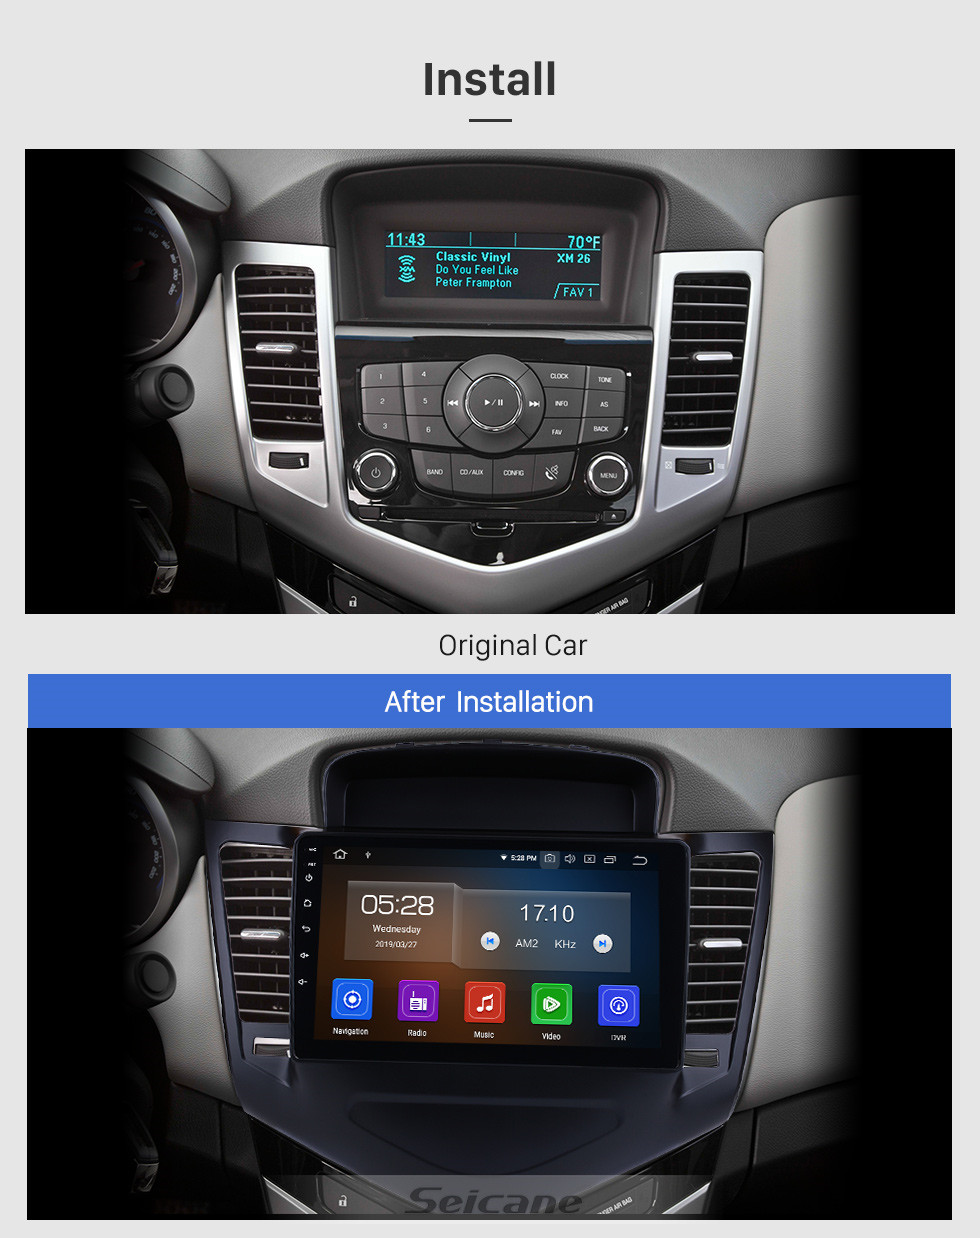 Seicane 2013-2015 chevy Chevrolet CRUZE Android 10.0 9 inch GPS Navigation Bluetooth Radio with USB FM Music Carplay support Steering Wheel Control 4G Backup camera